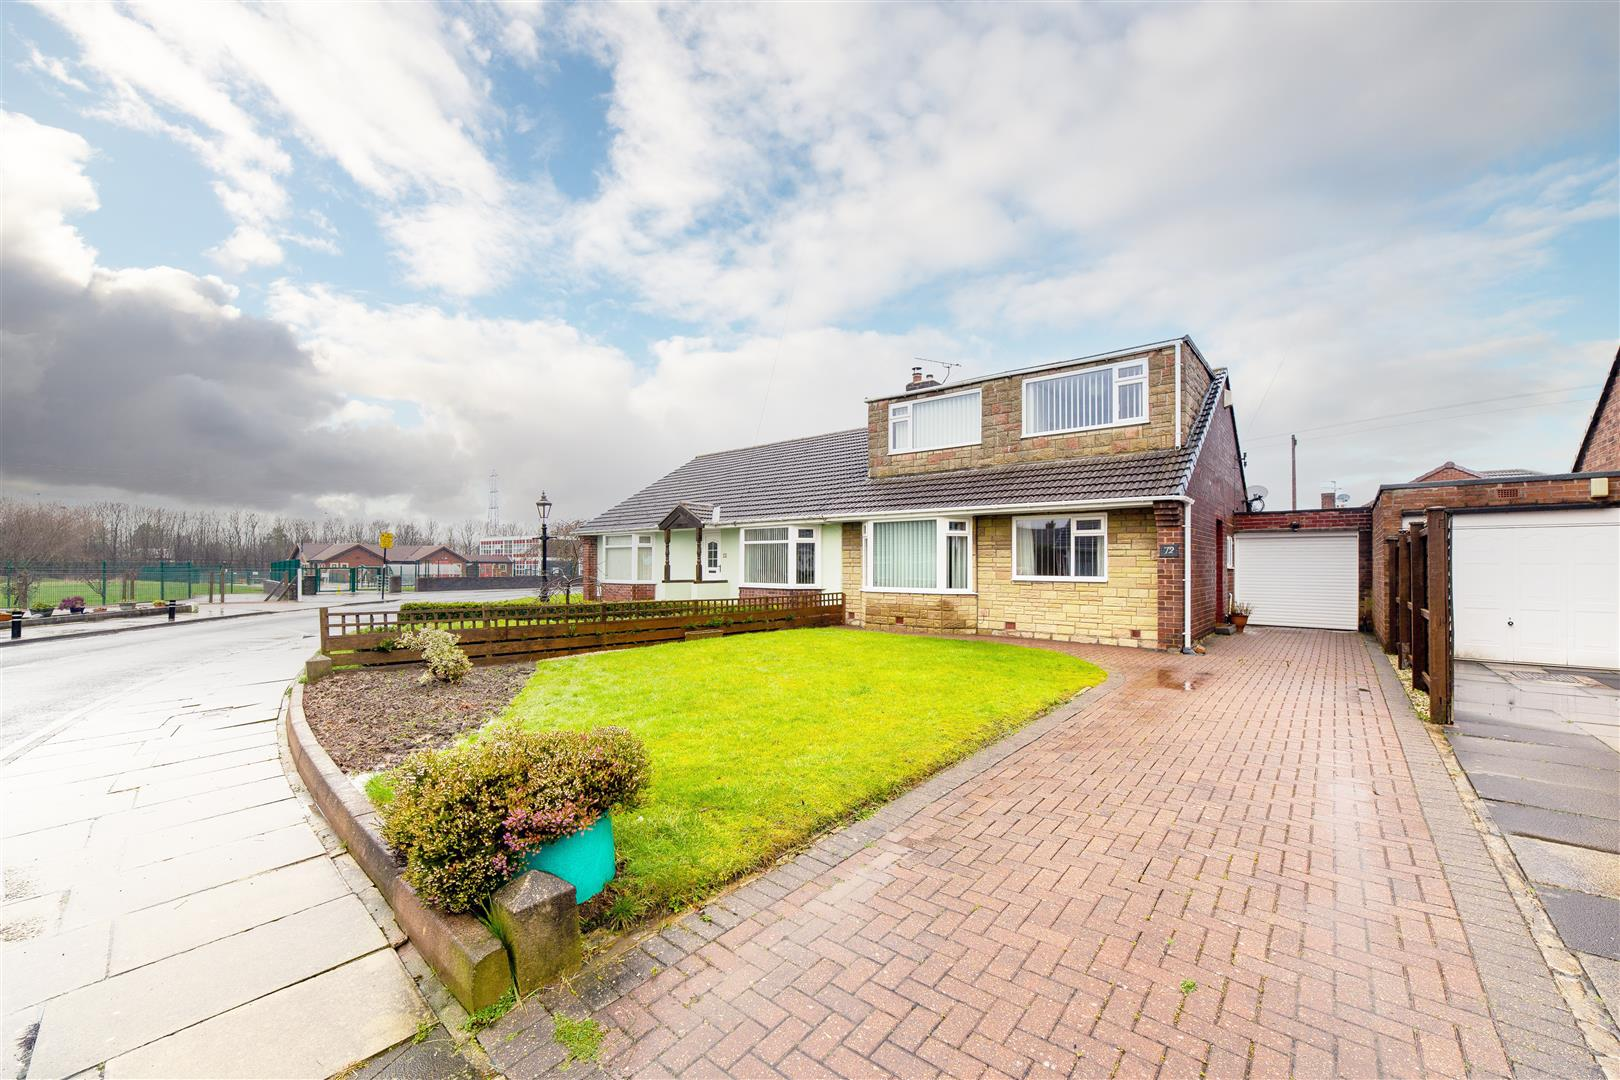 4 bed semi-detached bungalow for sale in Wideopen, NE13 6JH, NE13